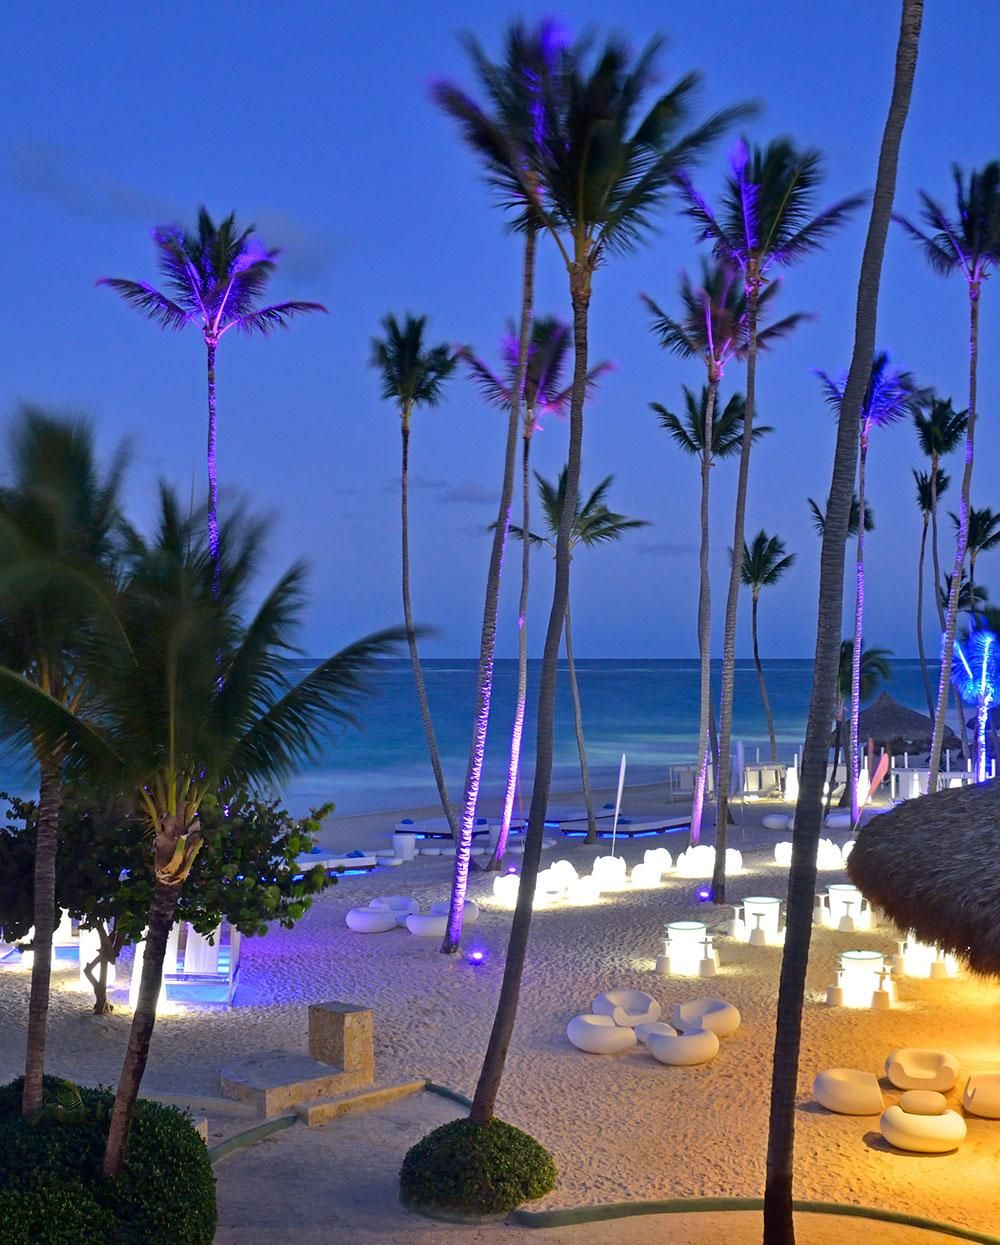 Vacations In Dominican Republic All Inclusive: Best Punta Cana All-Inclusive Resorts For Romantic